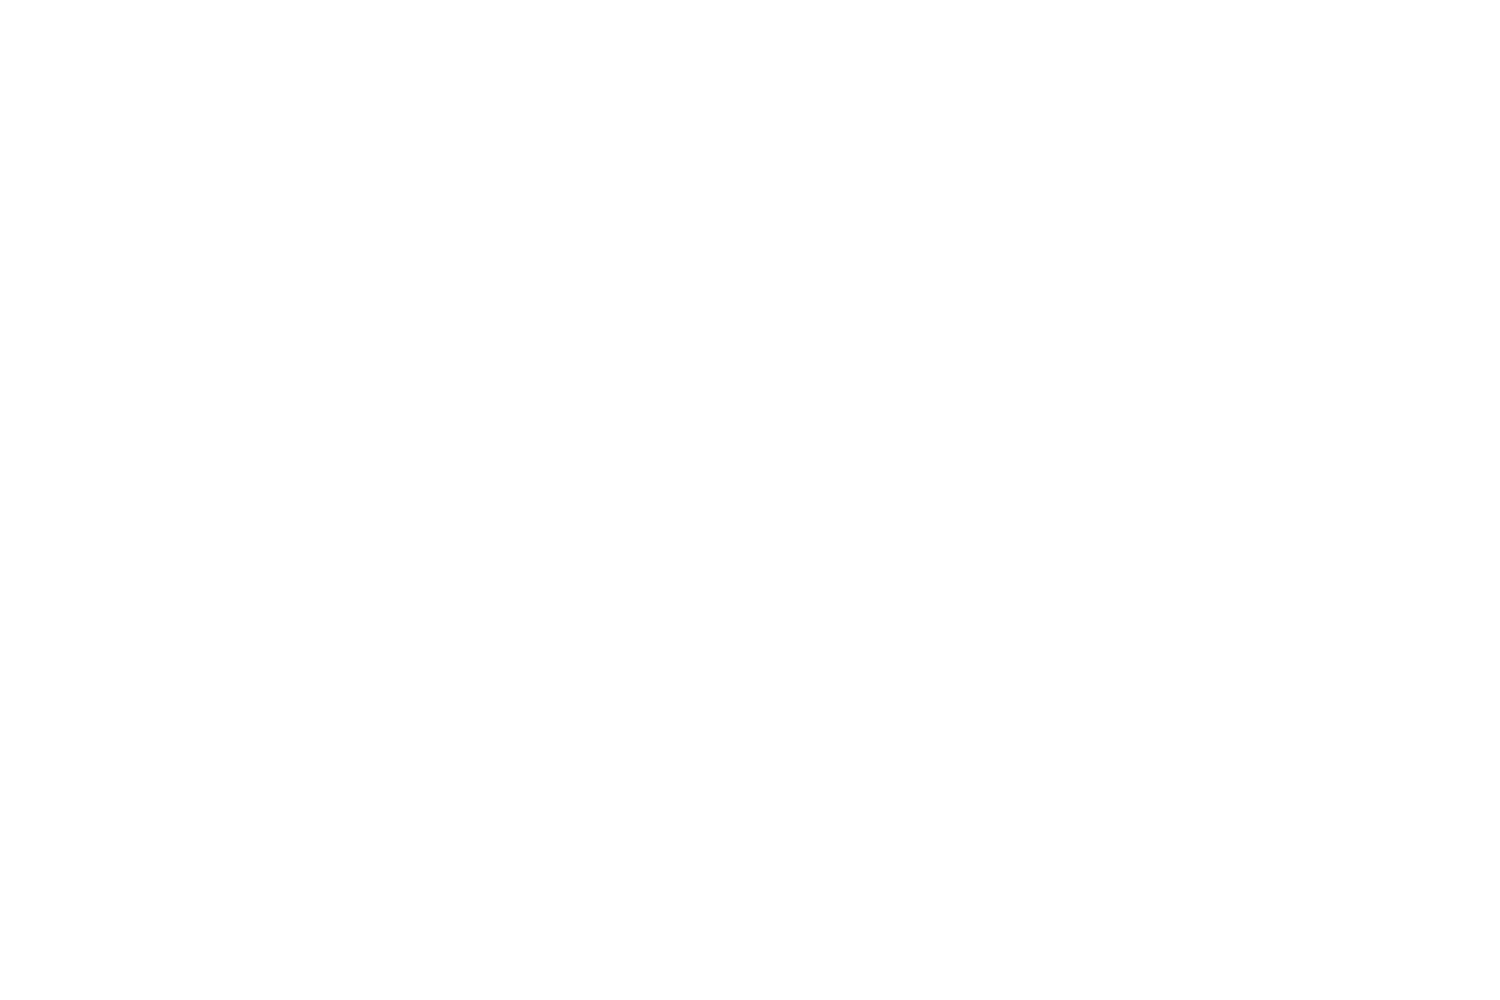 Backcountry Emily